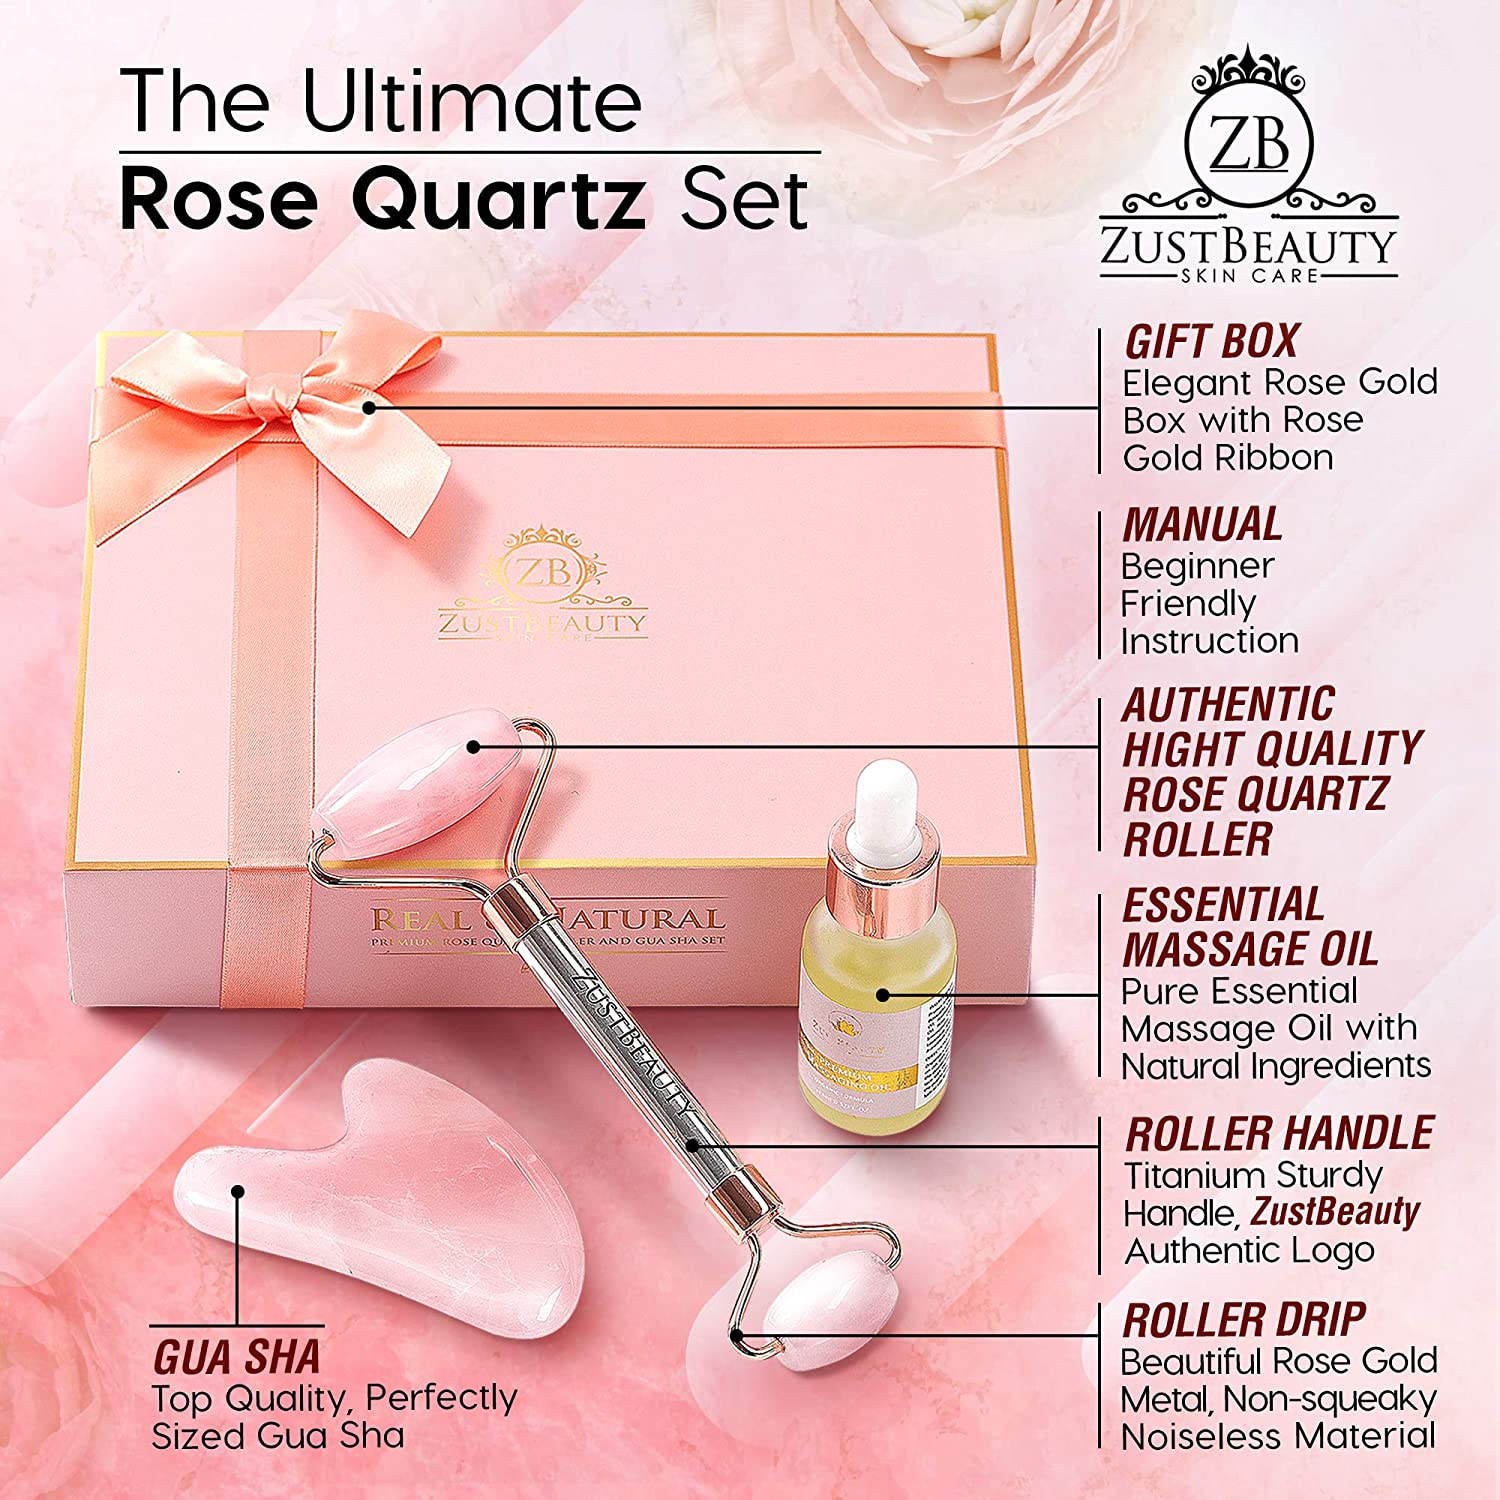 Rose Quartz Roller Set Rose Quartz Face Jade Roller, Rose Quartz Gua Sha, Essential Massage Oil Serum Rose Gold Roller Tip Boost Circulation, Collagen Production Boxed with Rose Gold Ribbon Gift